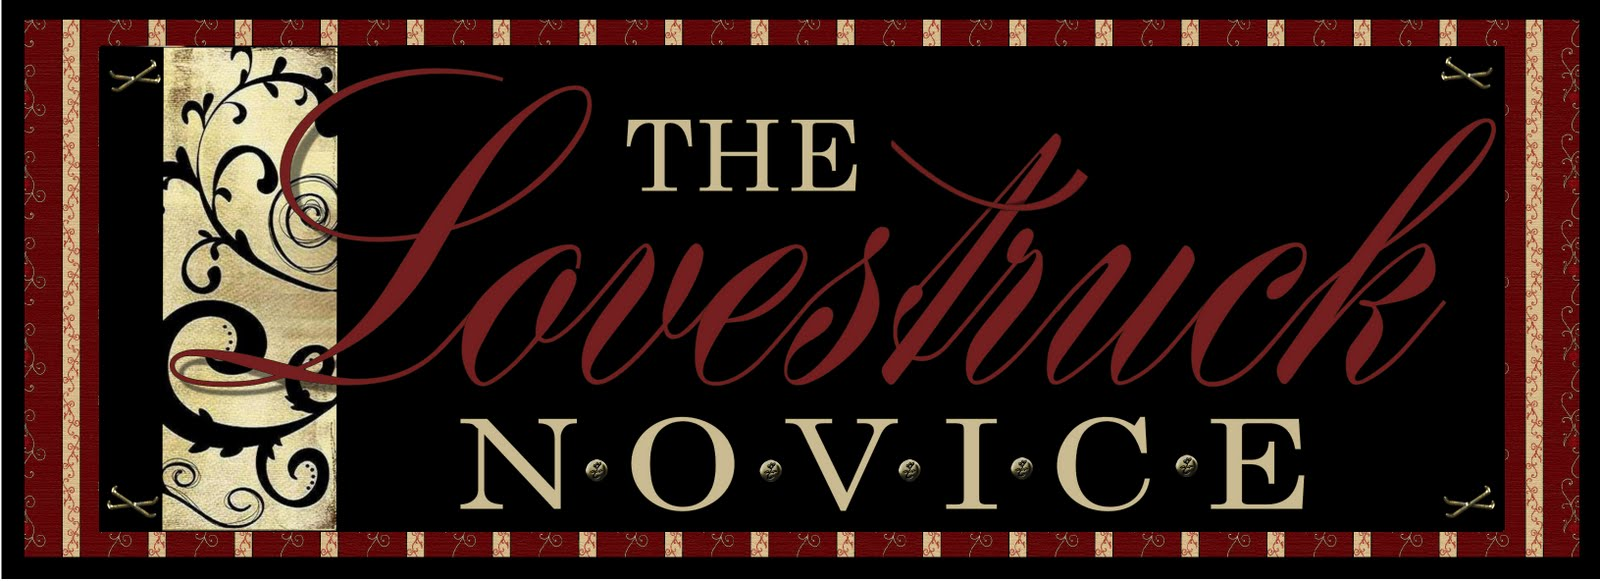 The Lovestruck Novice Reviews